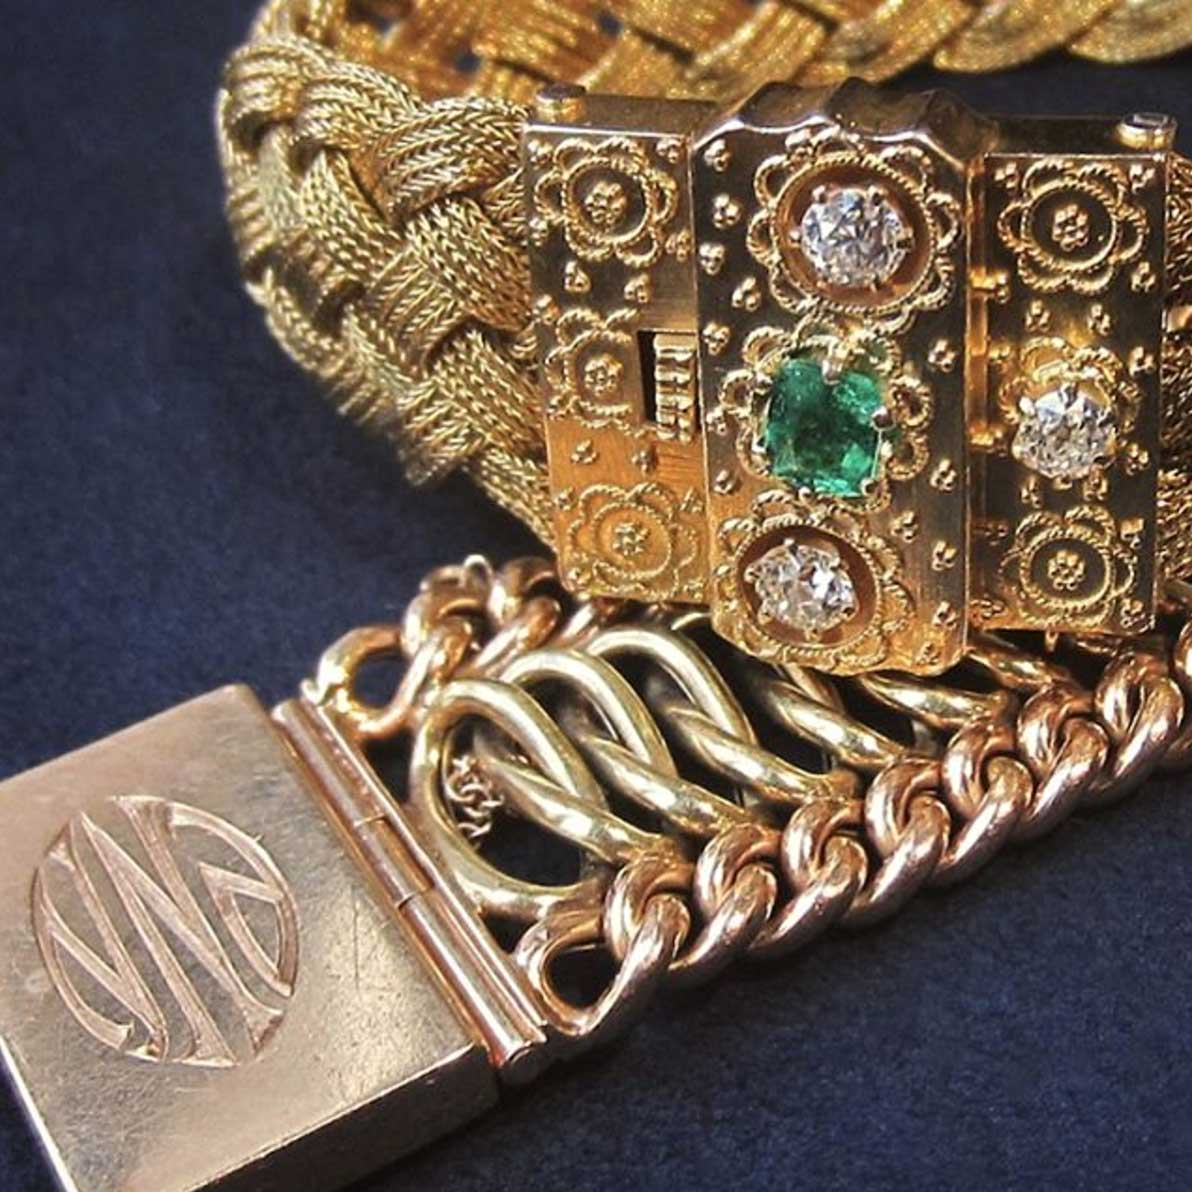 Doyle & Doyle antique gold emerald bracelets